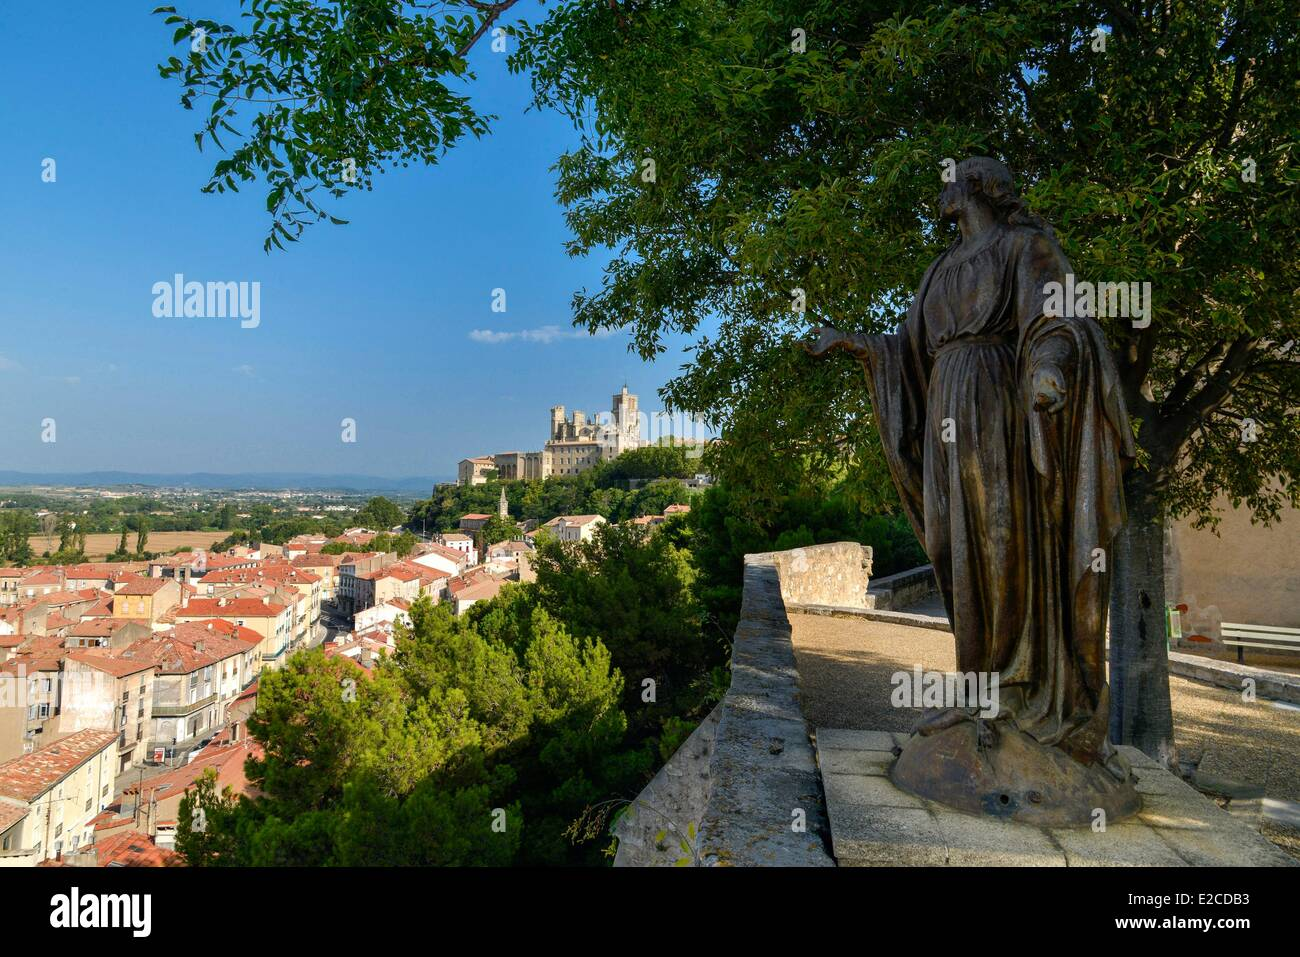 France, Herault, Beziers, sight on the suburbs of the city since the square Saint Jacques with a bronze statue of - Stock Image